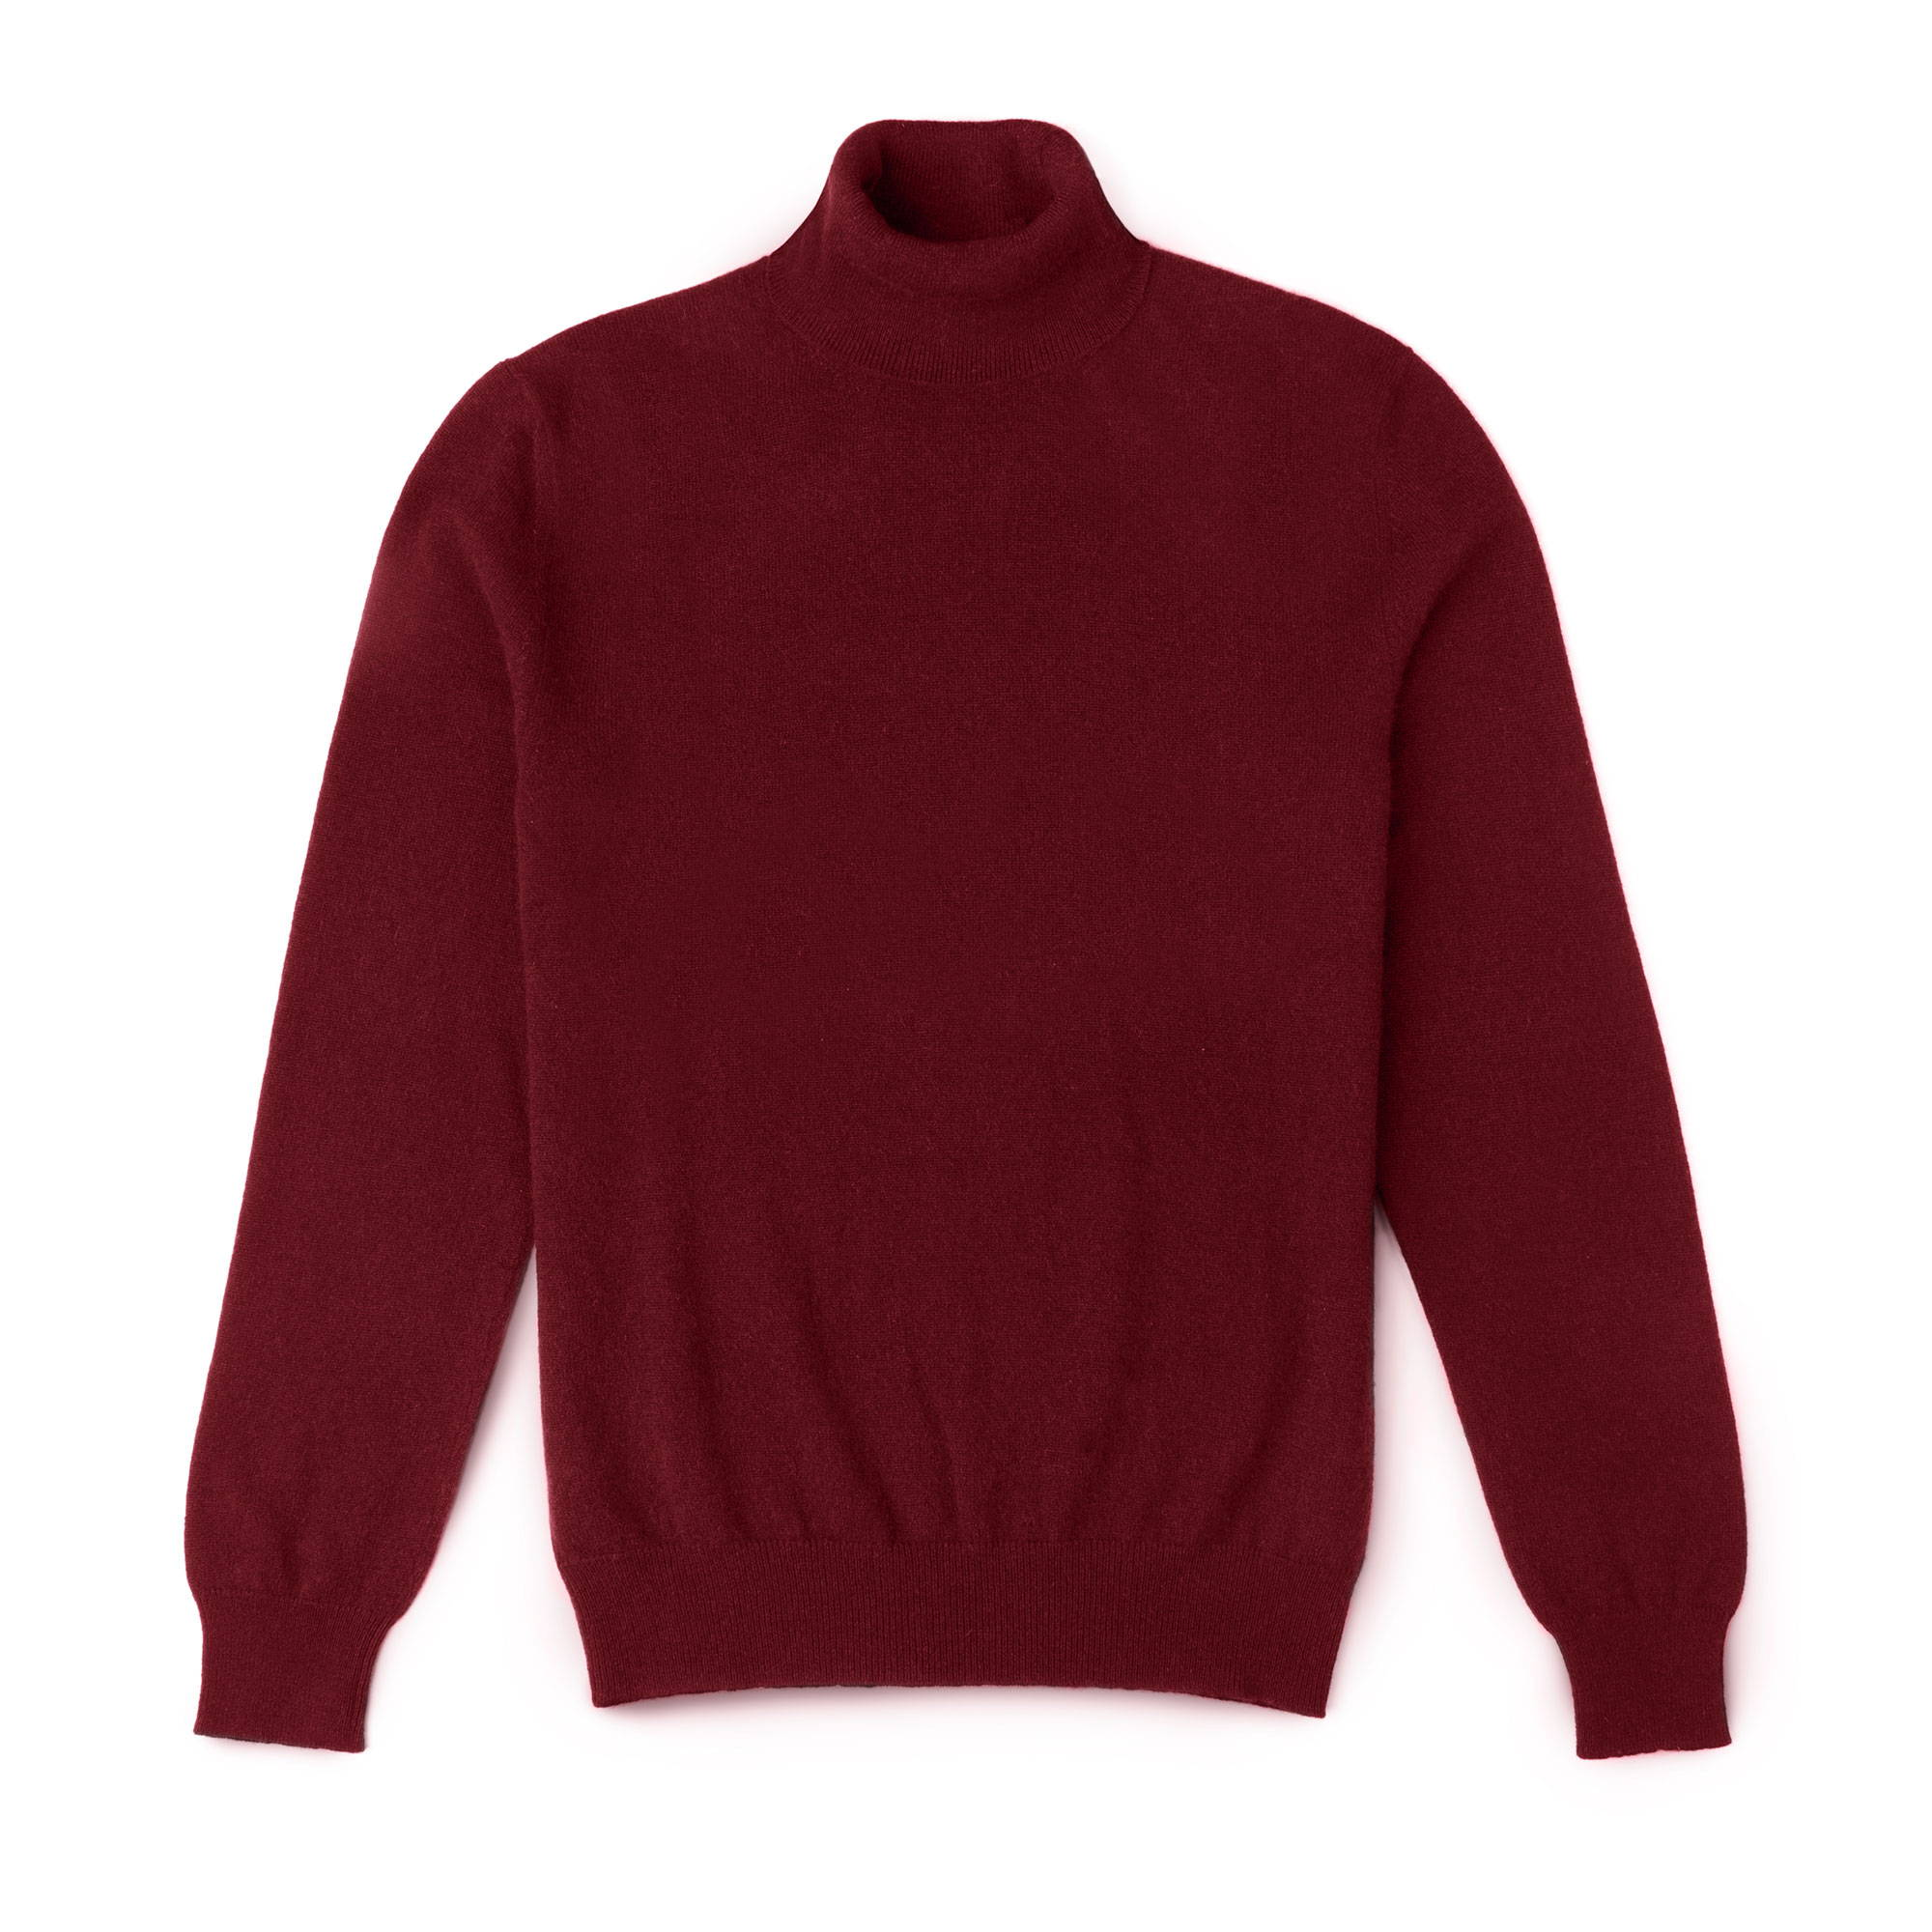 Luca Faloni Lava Red Pure Cashmere Roll Neck Made in Italy